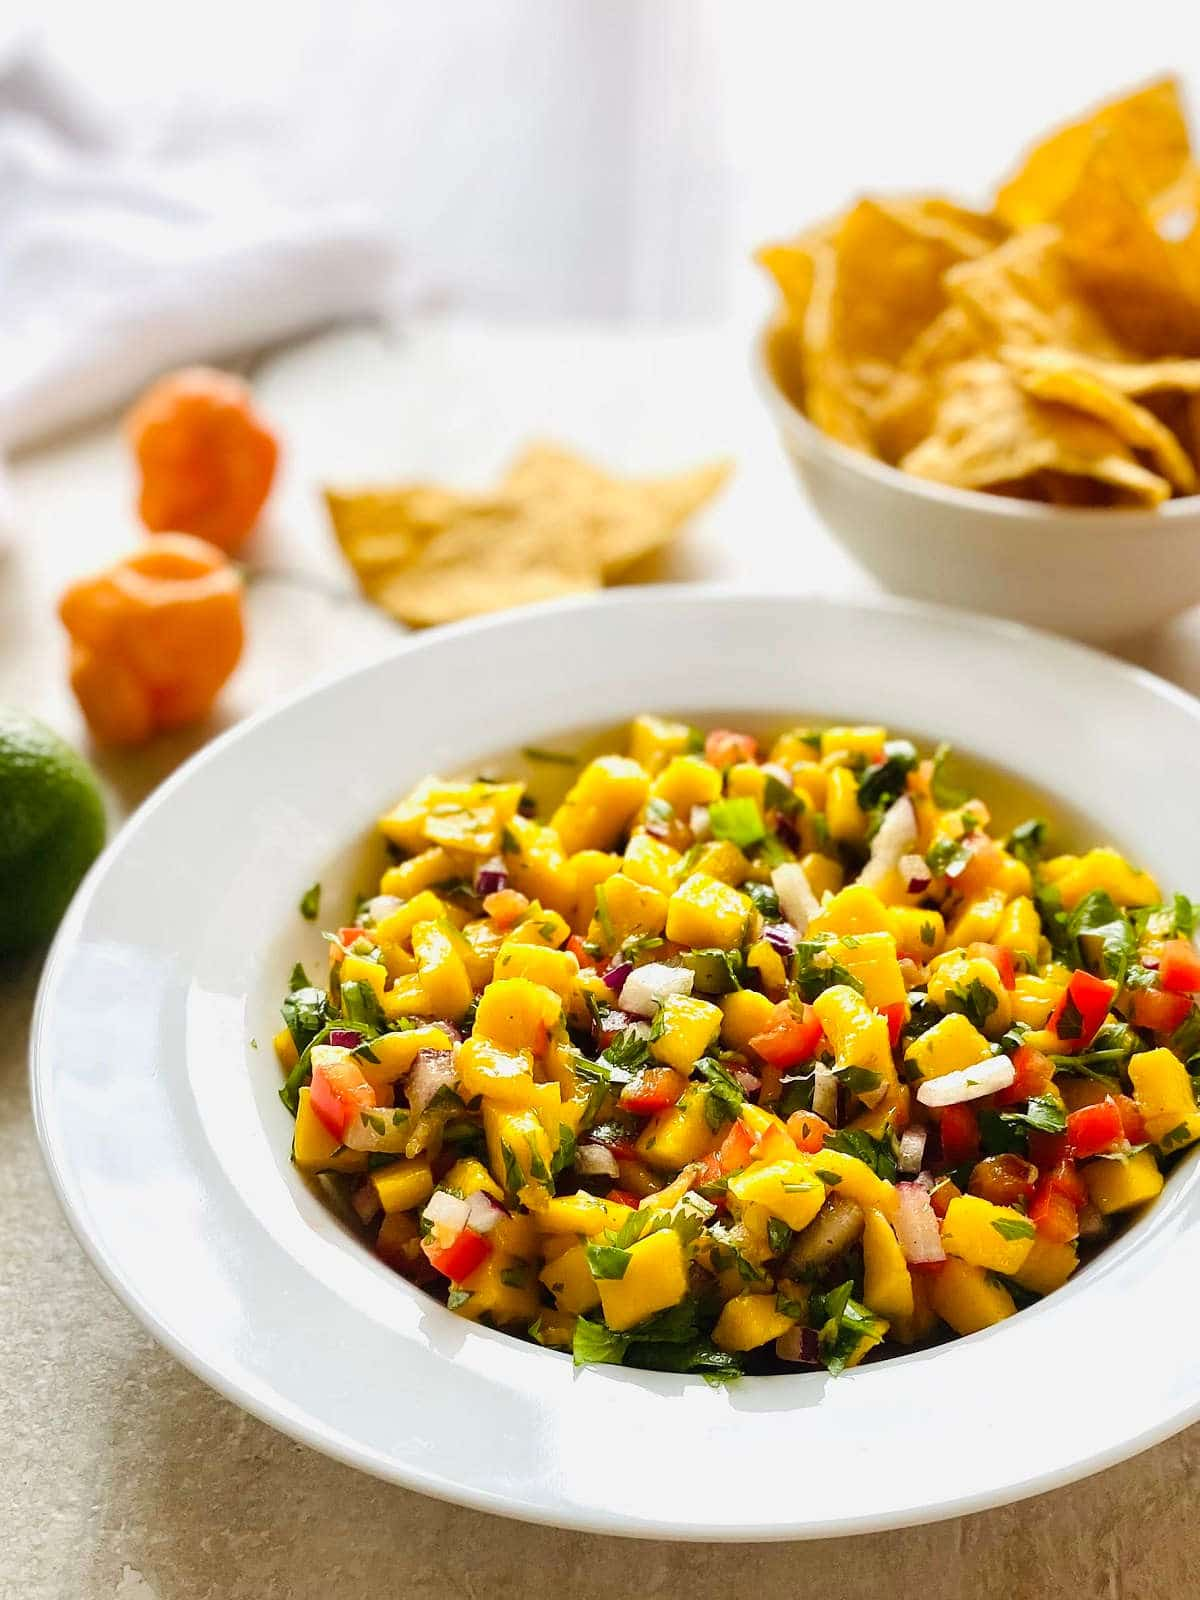 habanero mango salsa in a bowl and a bowl of tortilla chips and habanero peppers in the background